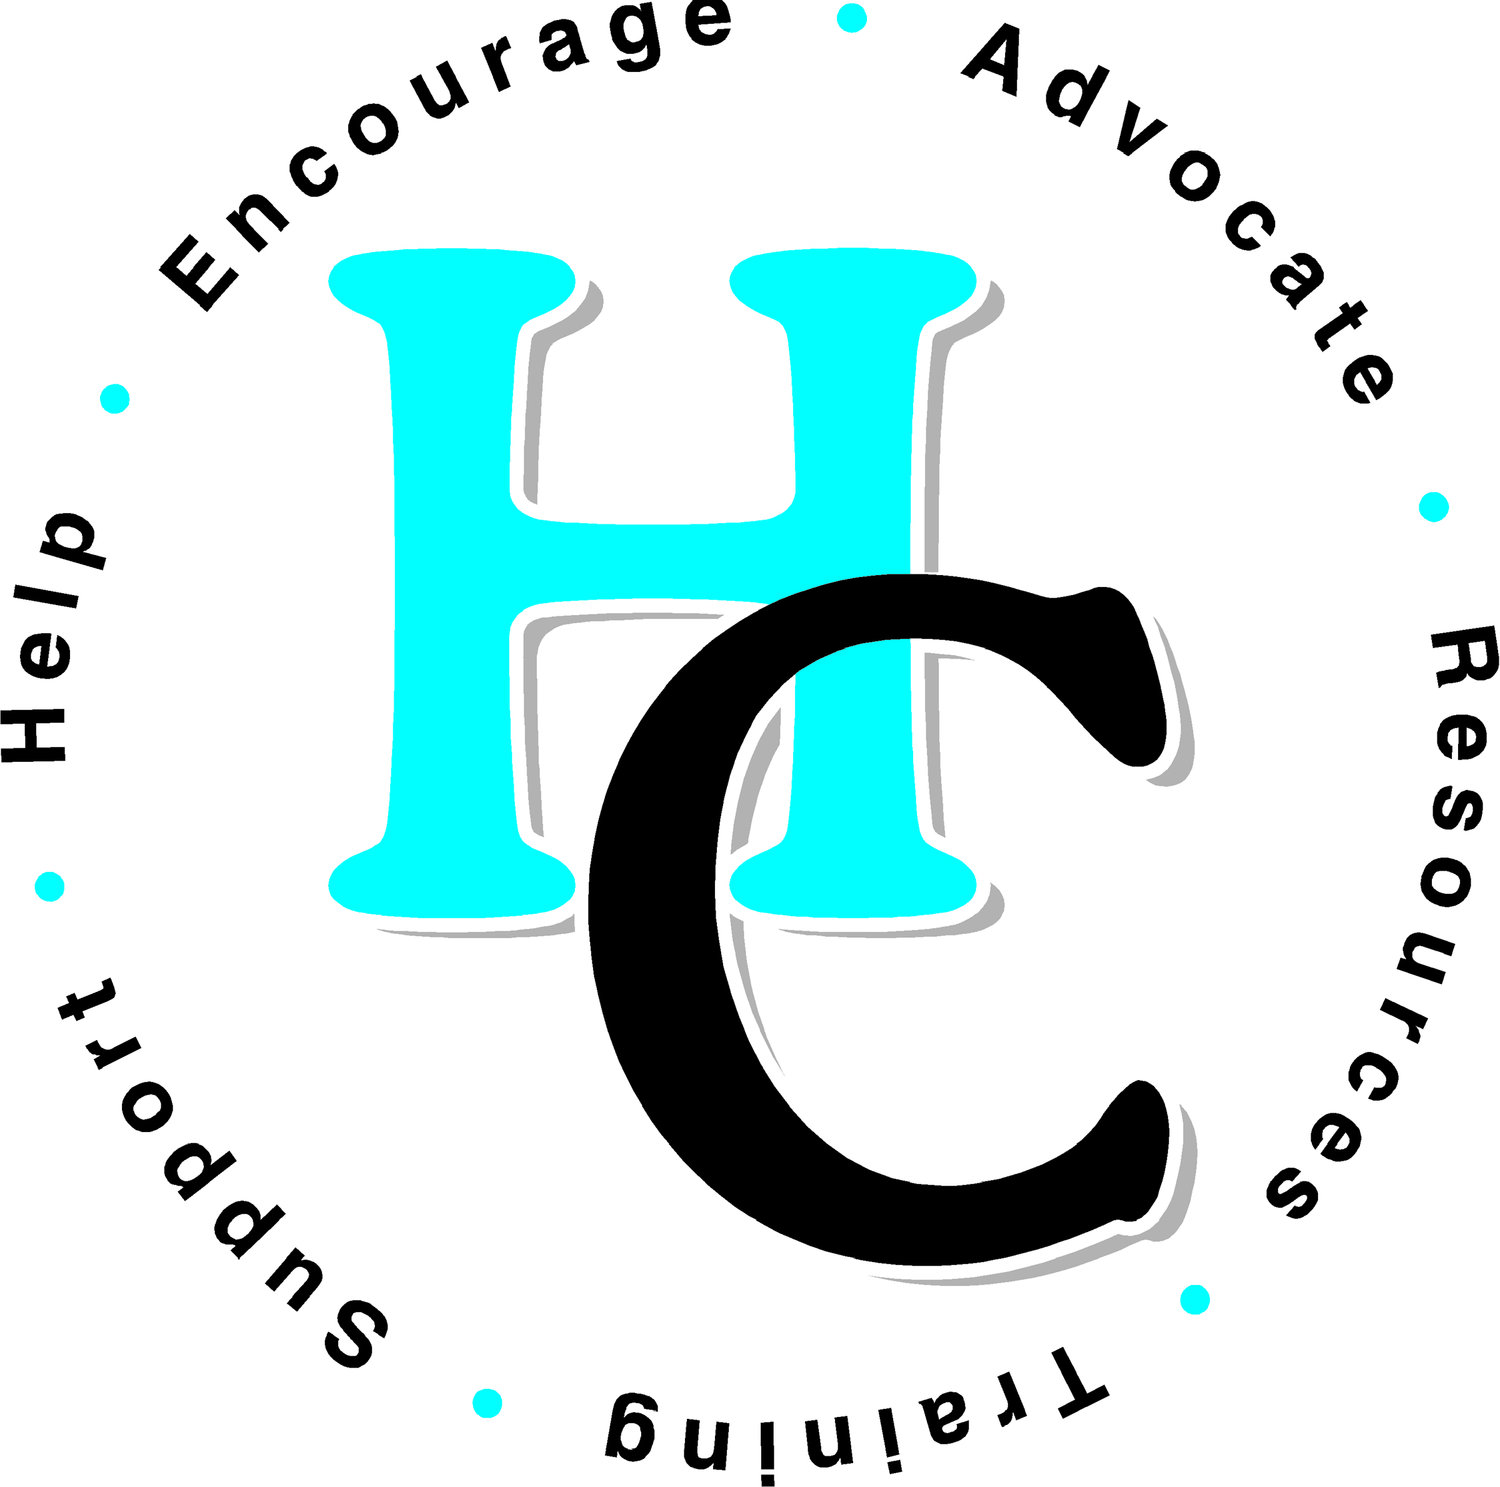 Logo of the letters HC, encircled by the words Encourage, Advocate, Resoruces, Training, Support, and Help